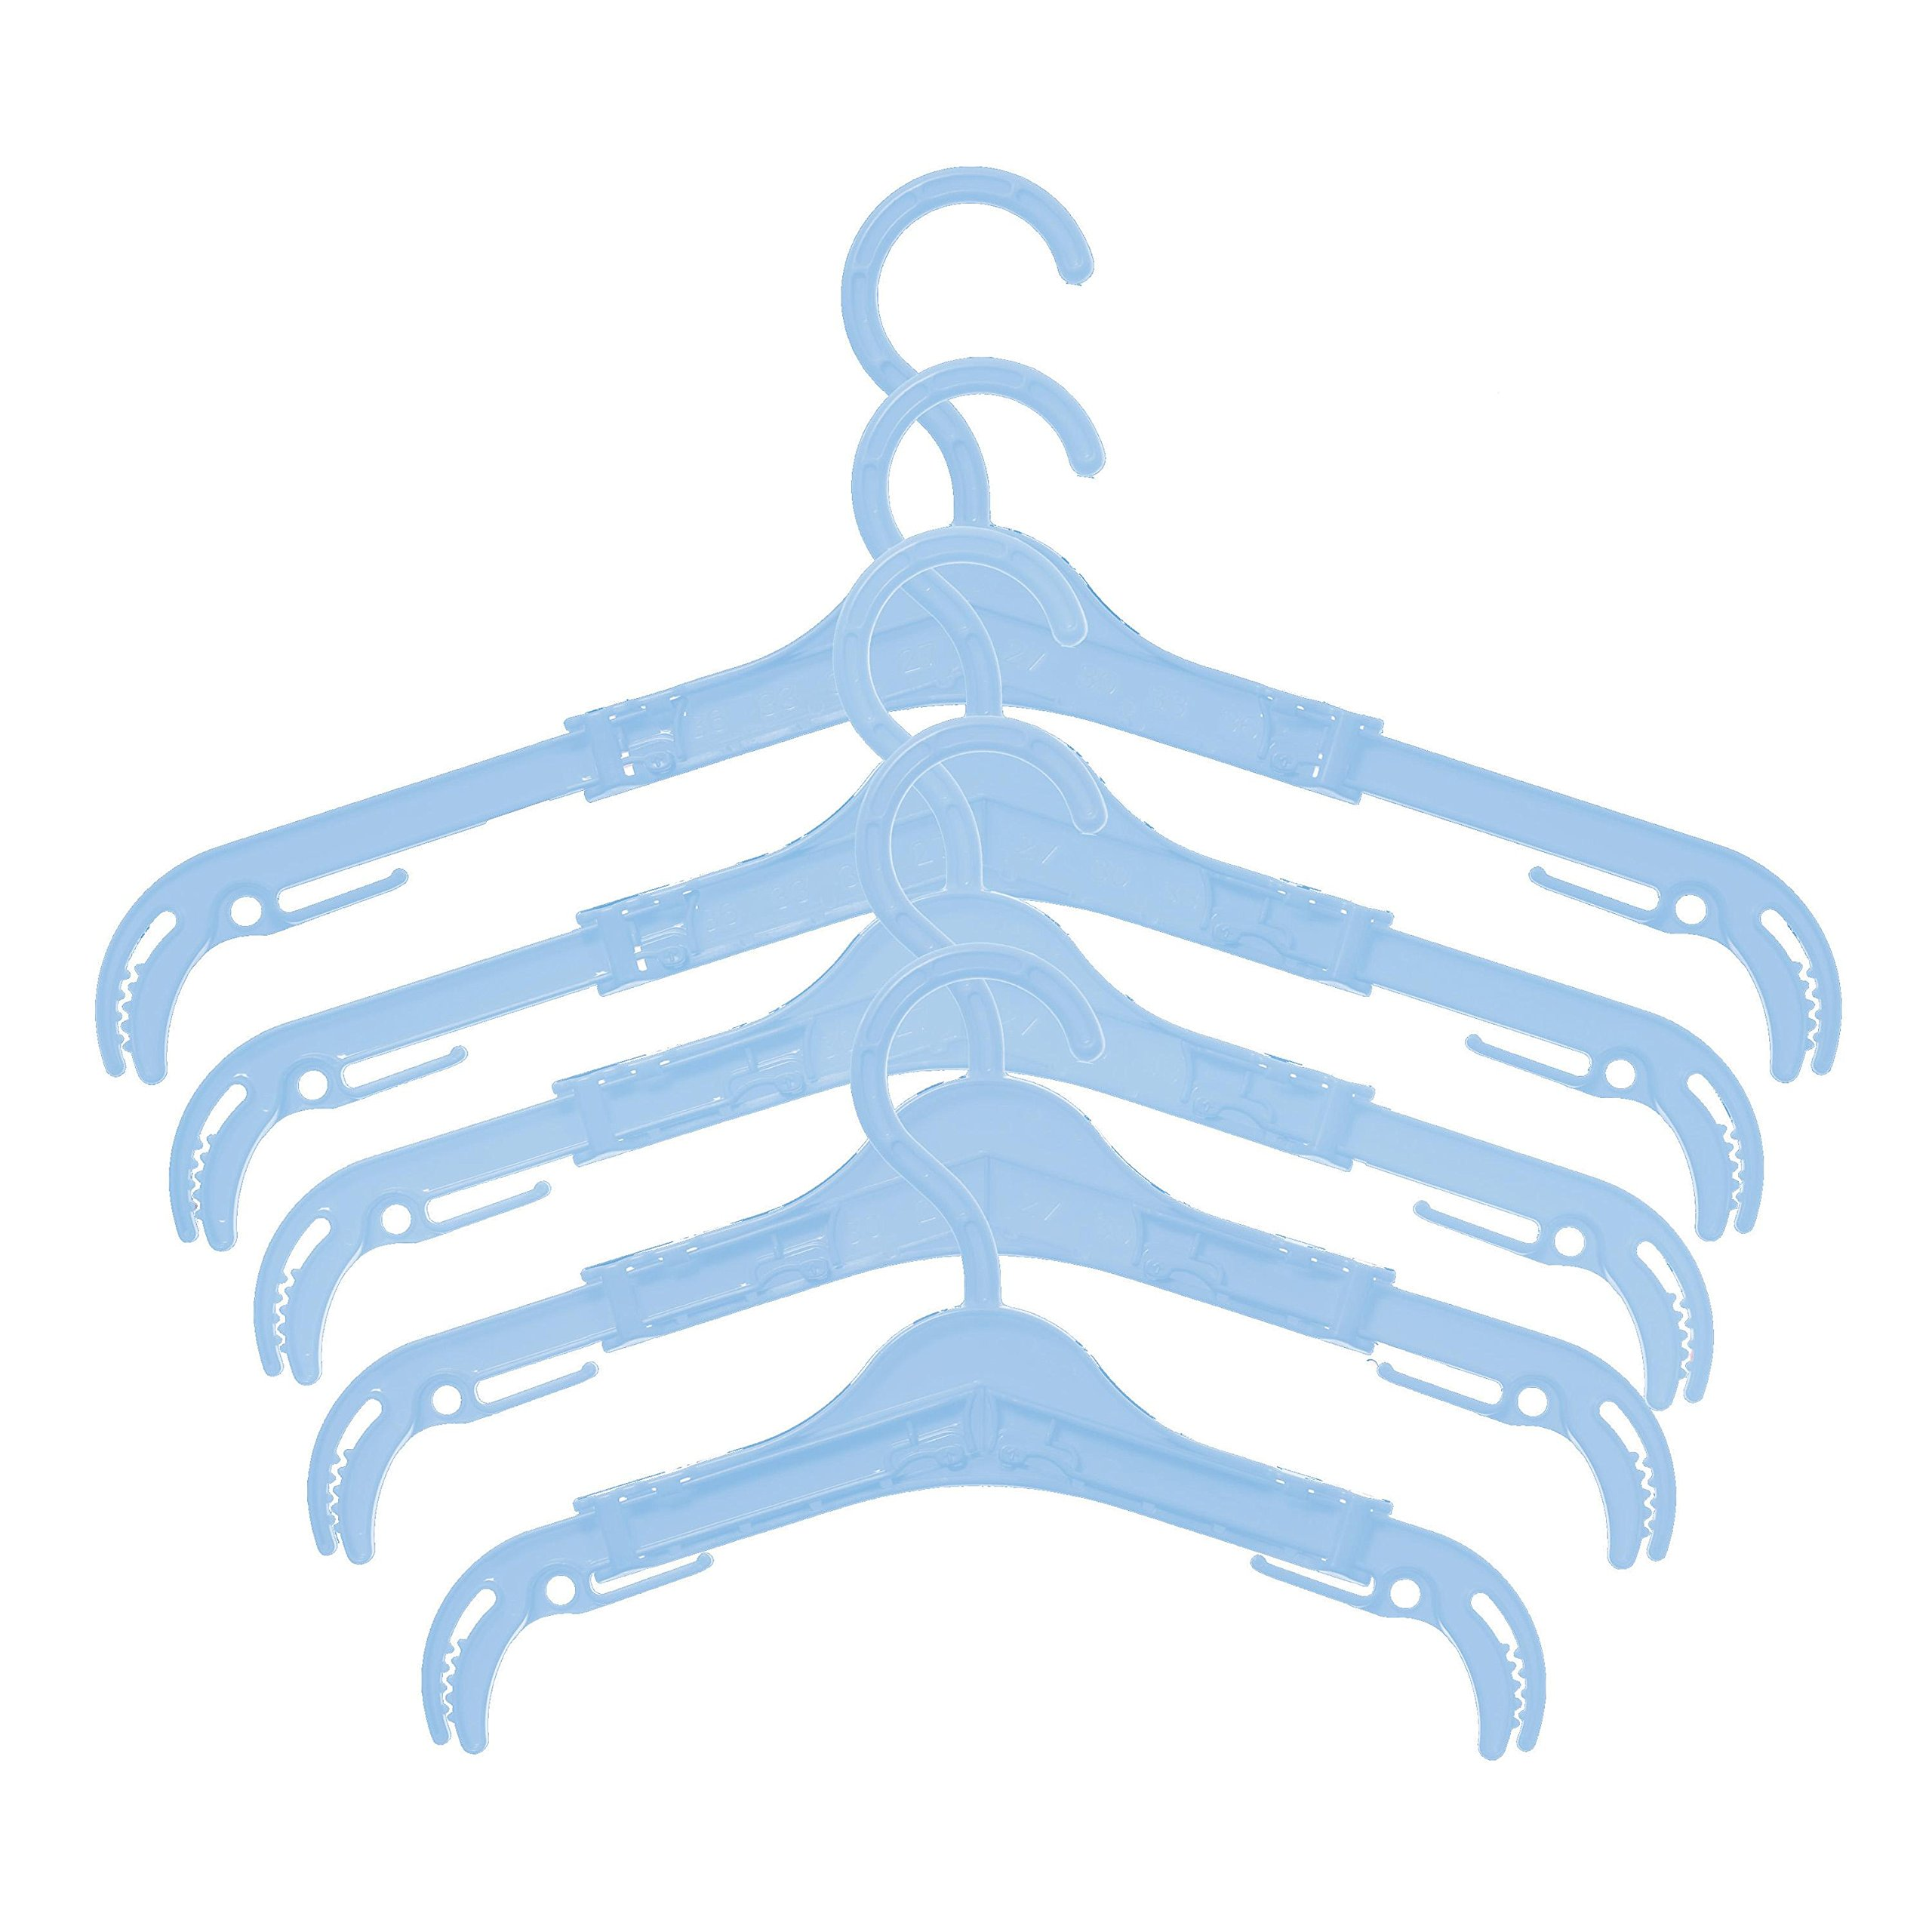 Dreambaby Grohangers, 4 Count, White by Dreambaby (Image #6)